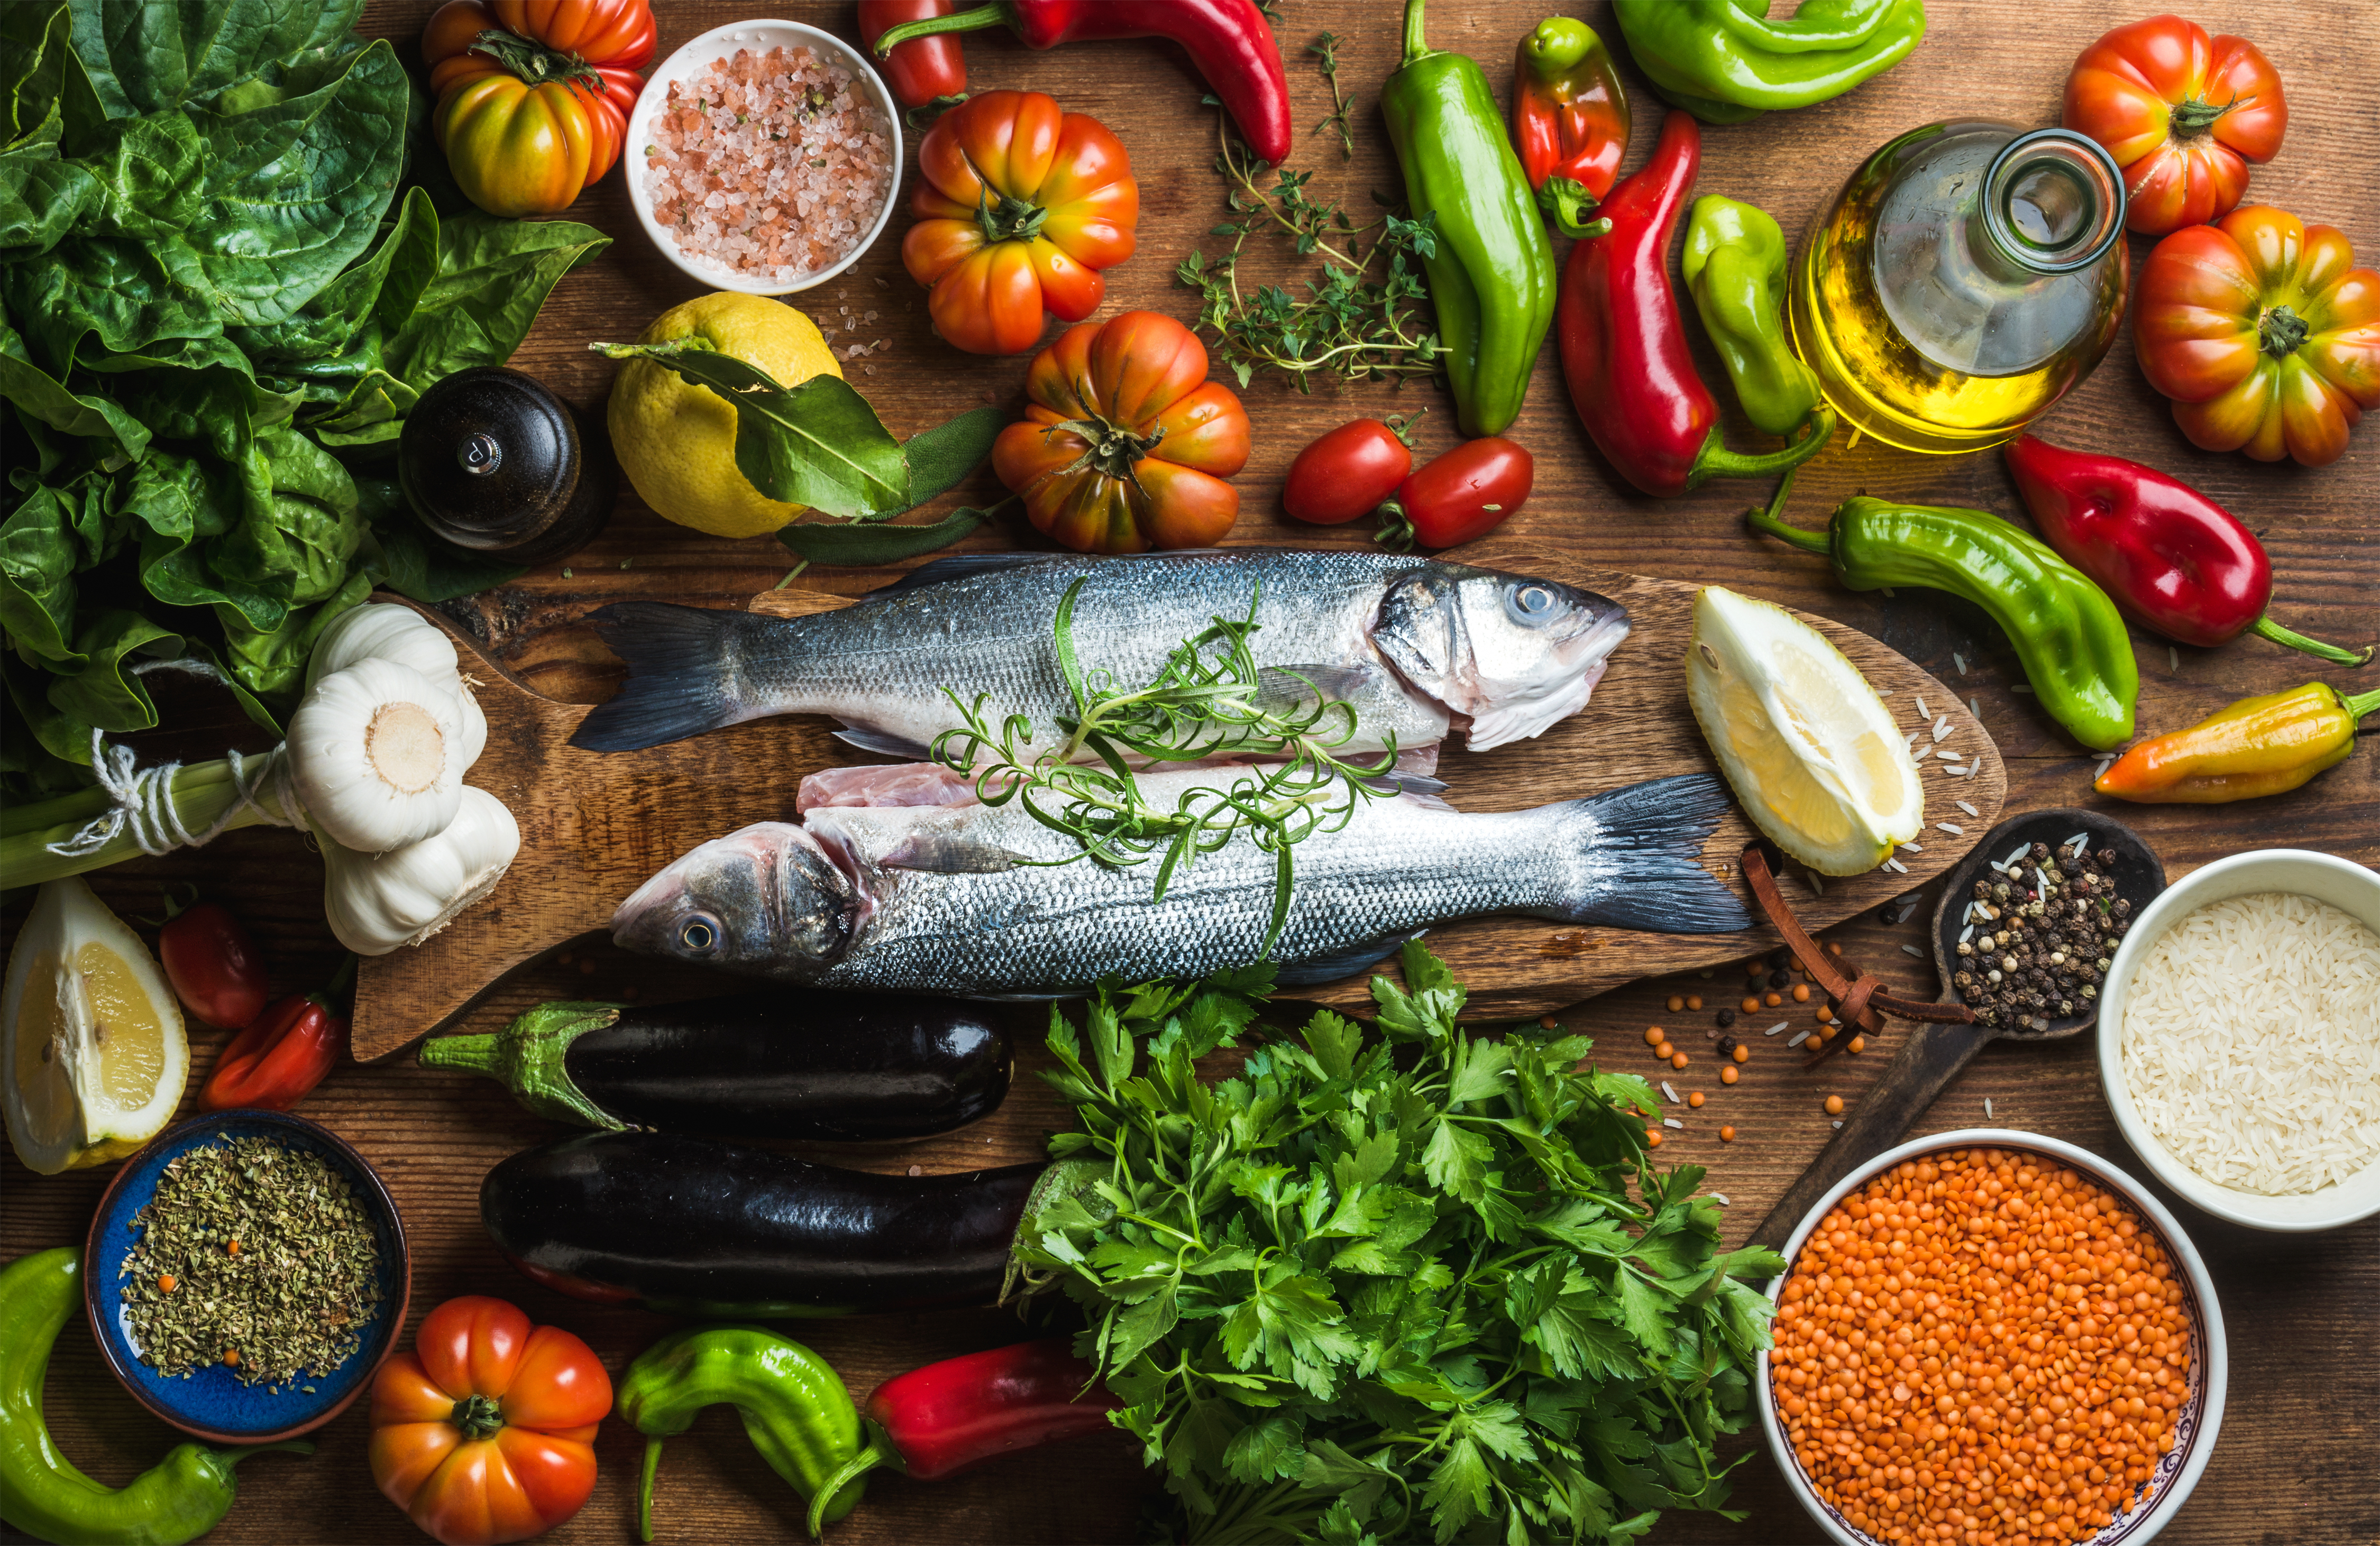 Raw uncooked seabass fish with vegetables, grains, herbs and spices on chopping board over rustic wooden background